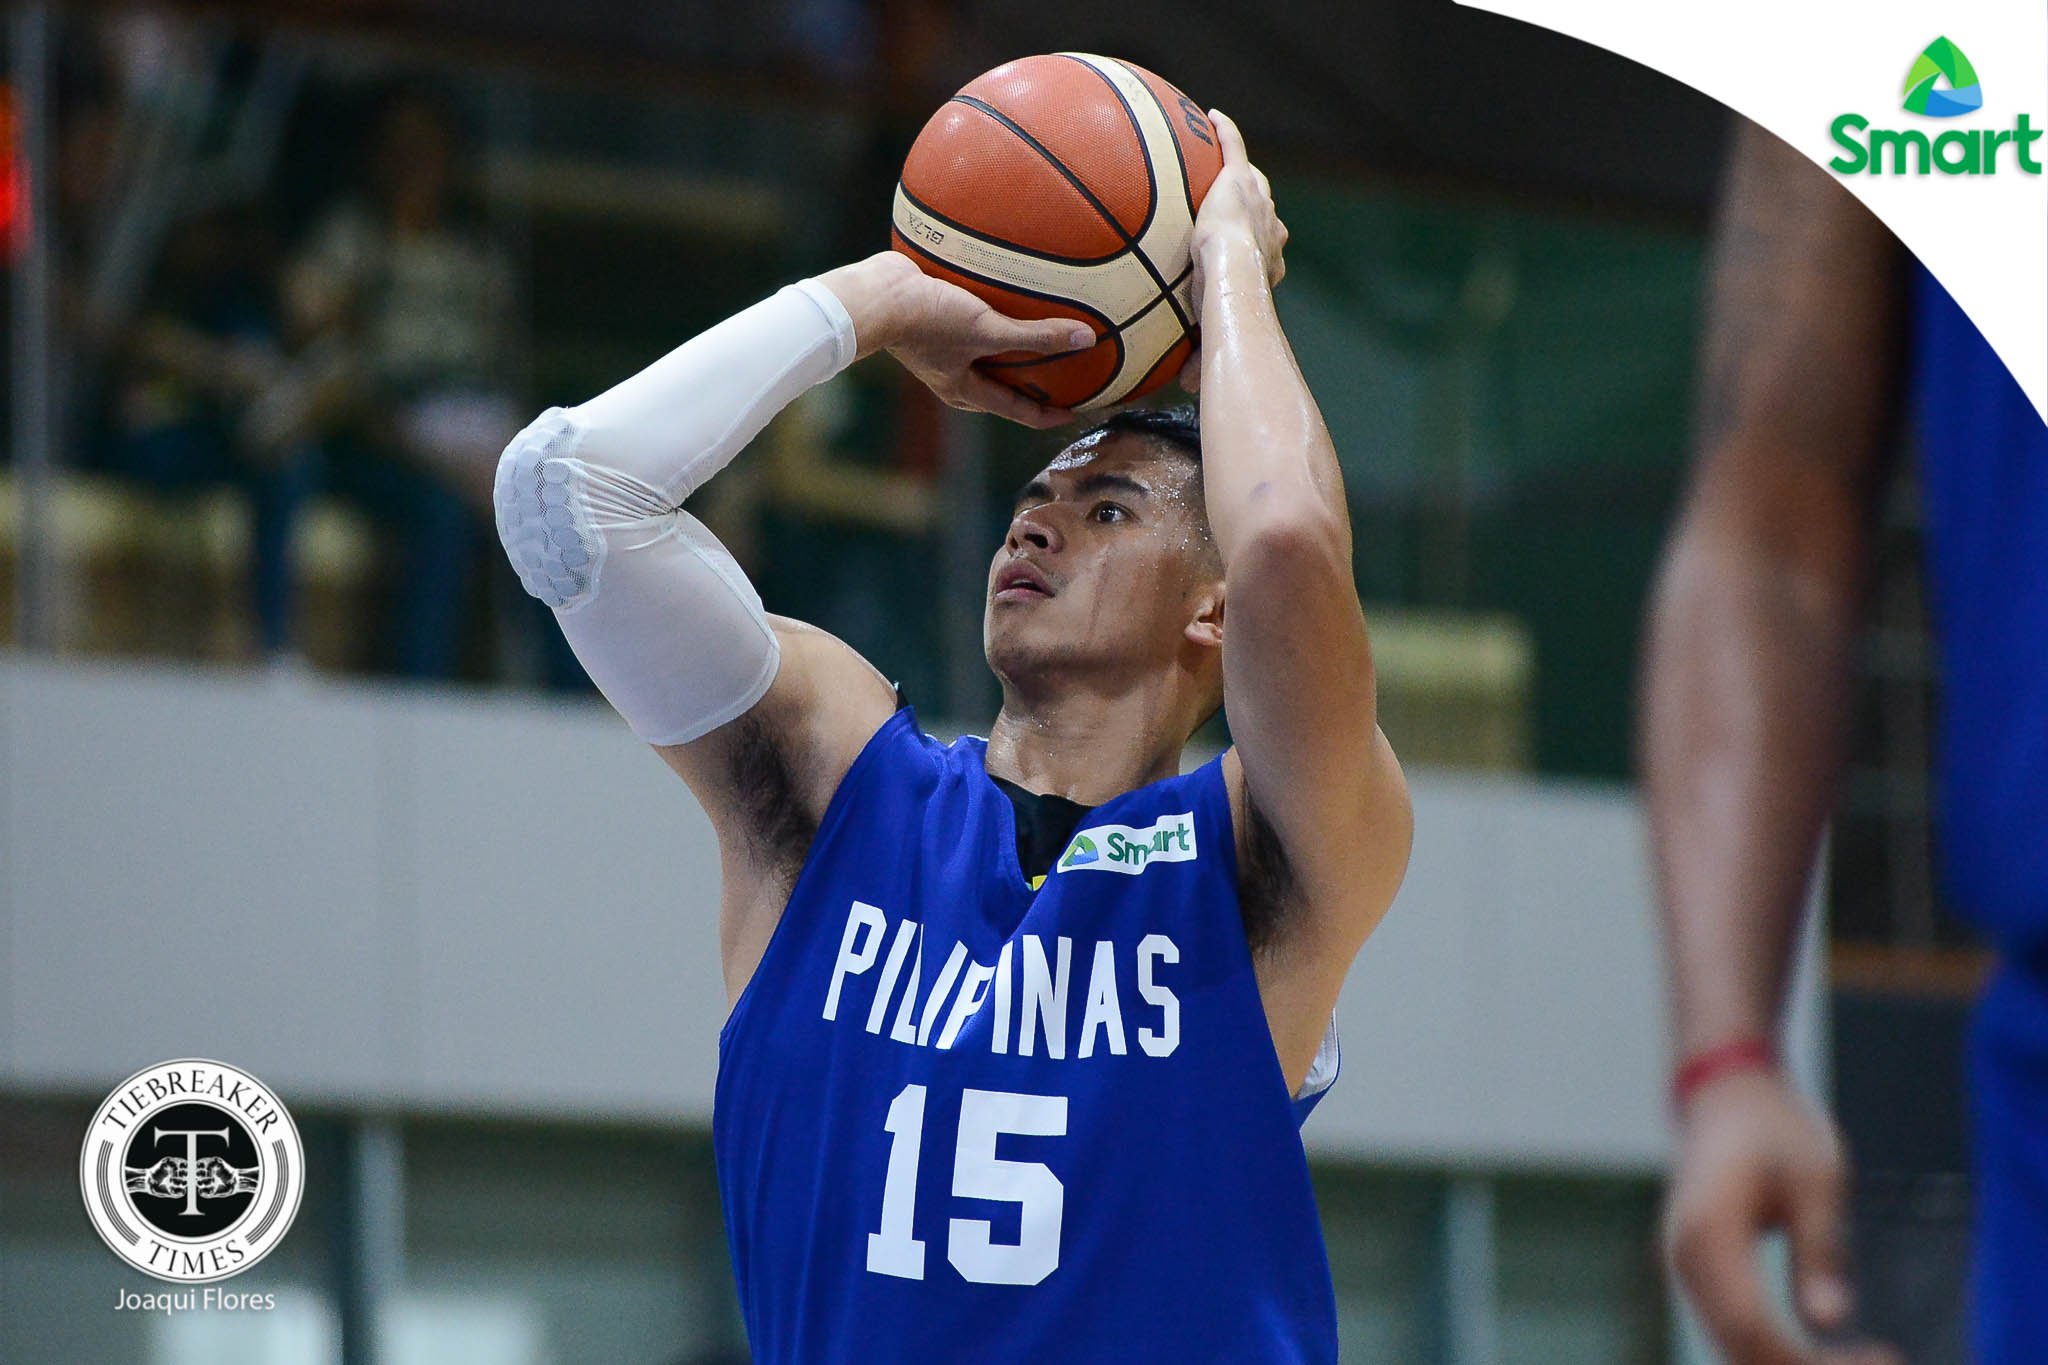 Tiebreaker Times Playing for Gilas Pilipinas means more for Kiefer Ravena 2019 FIBA World Cup Qualifiers Basketball Gilas Pilipinas News  Kiefer Ravena 2019 FIBA World Cup Qualifiers Group B